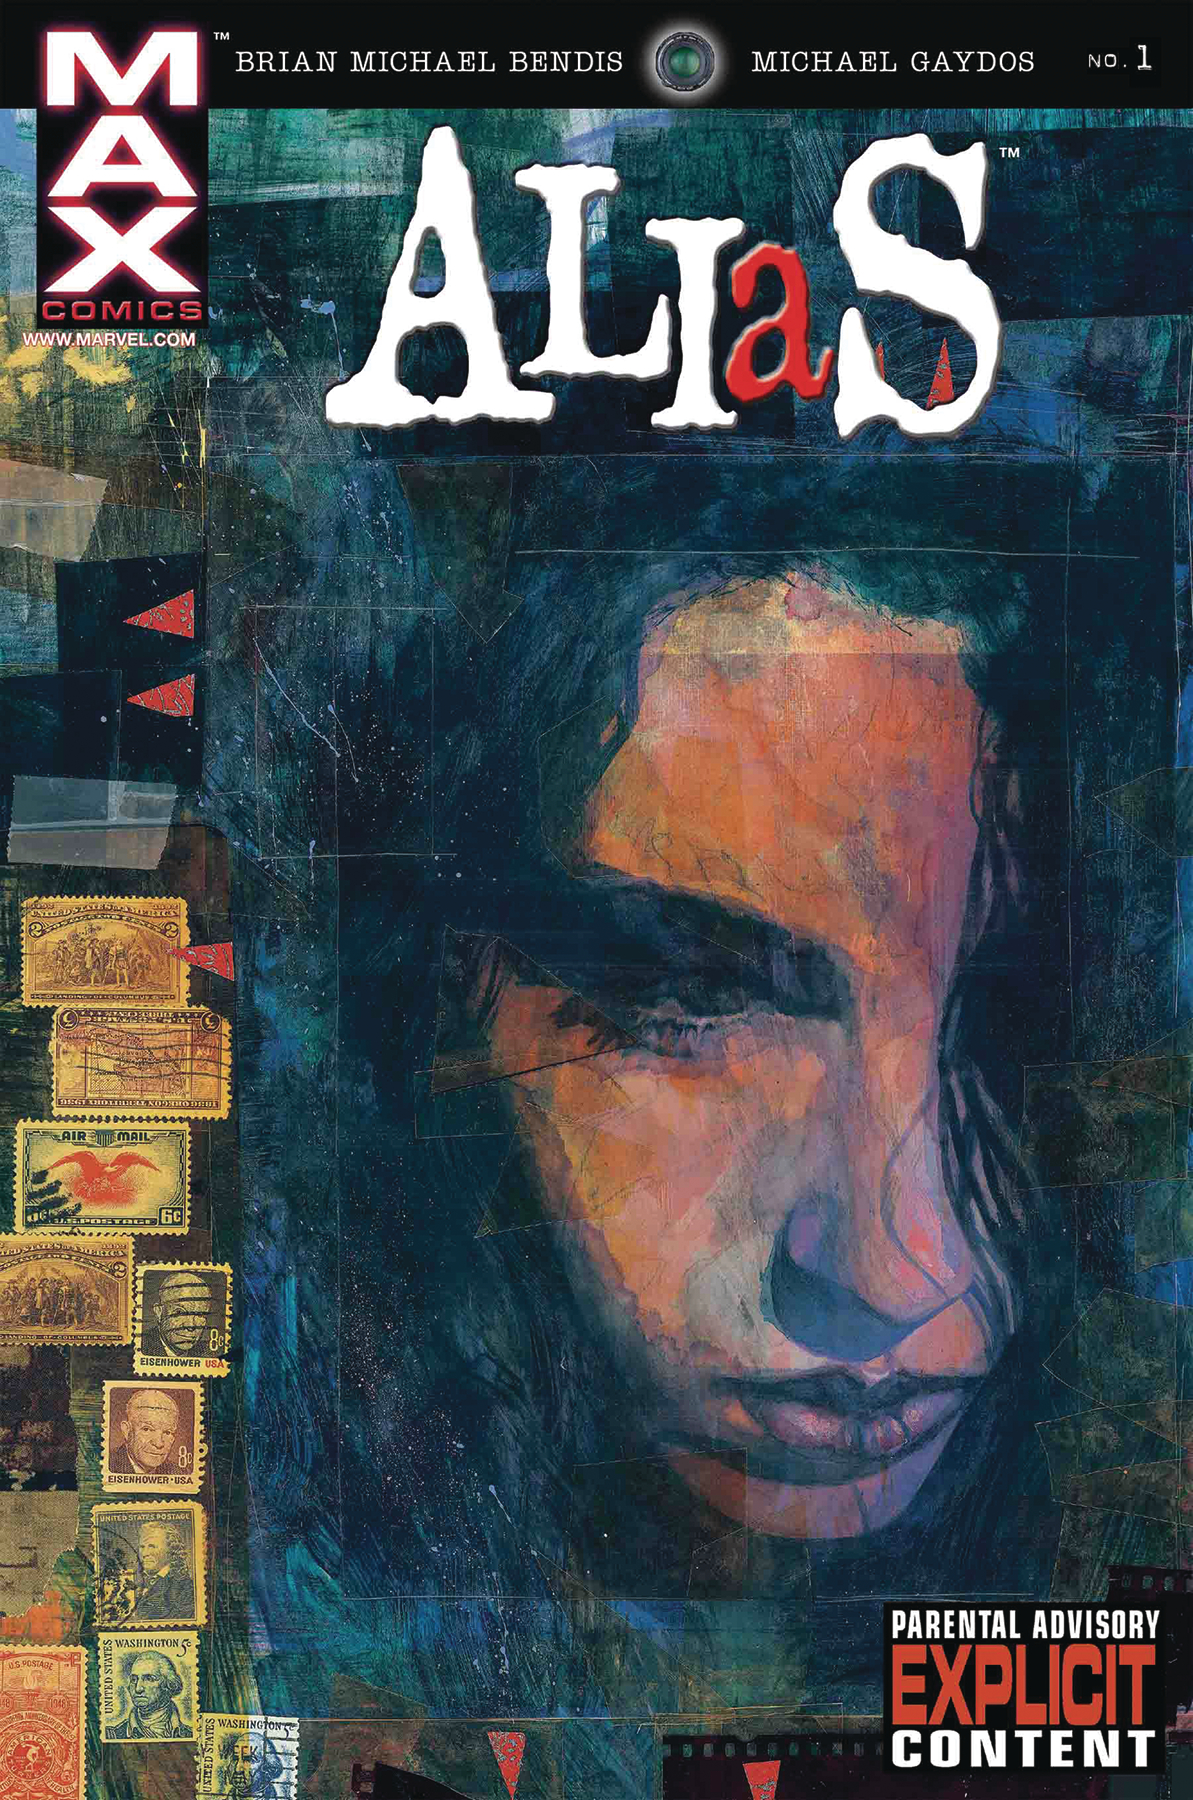 TRUE BELIEVERS JESSICA JONES ALIAS BY BENDIS & GAYDOS #1